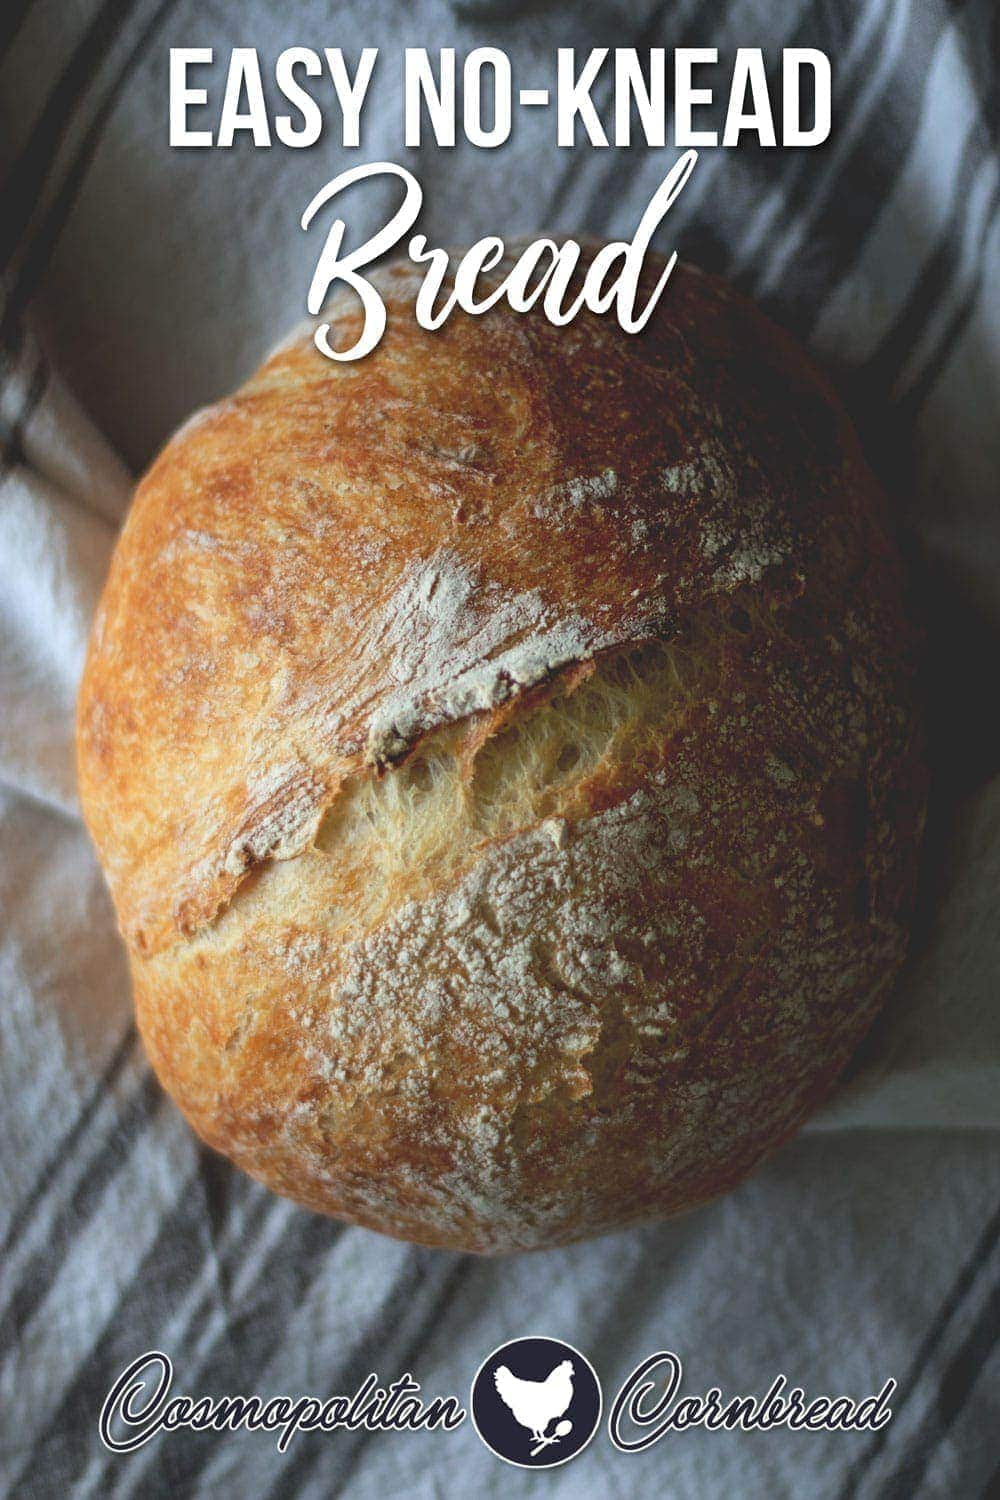 How to Make Homemade Bread - Easy No-Knead Recipe that is great for beginners. | Cosmopolitan Cornbread